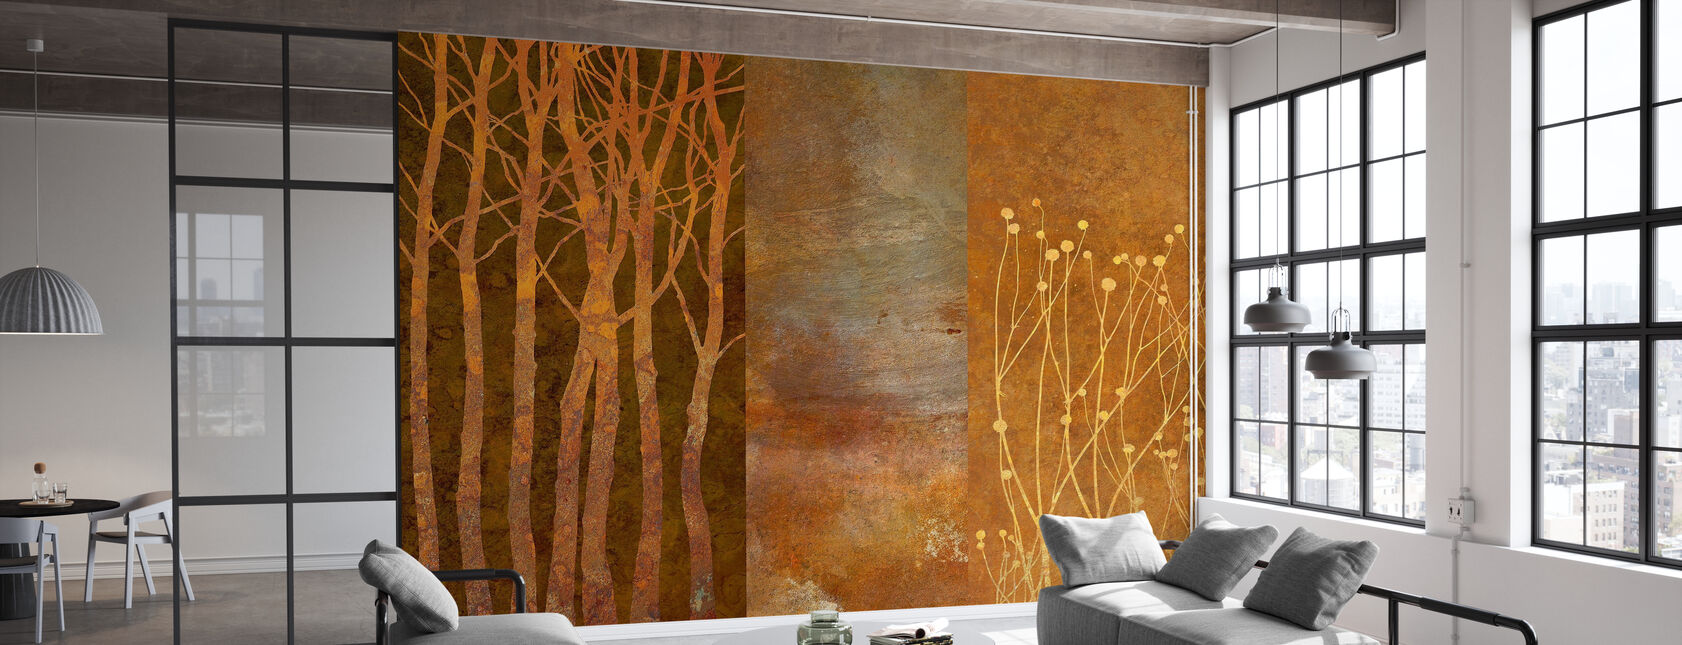 Collage in Copper - Wallpaper - Office